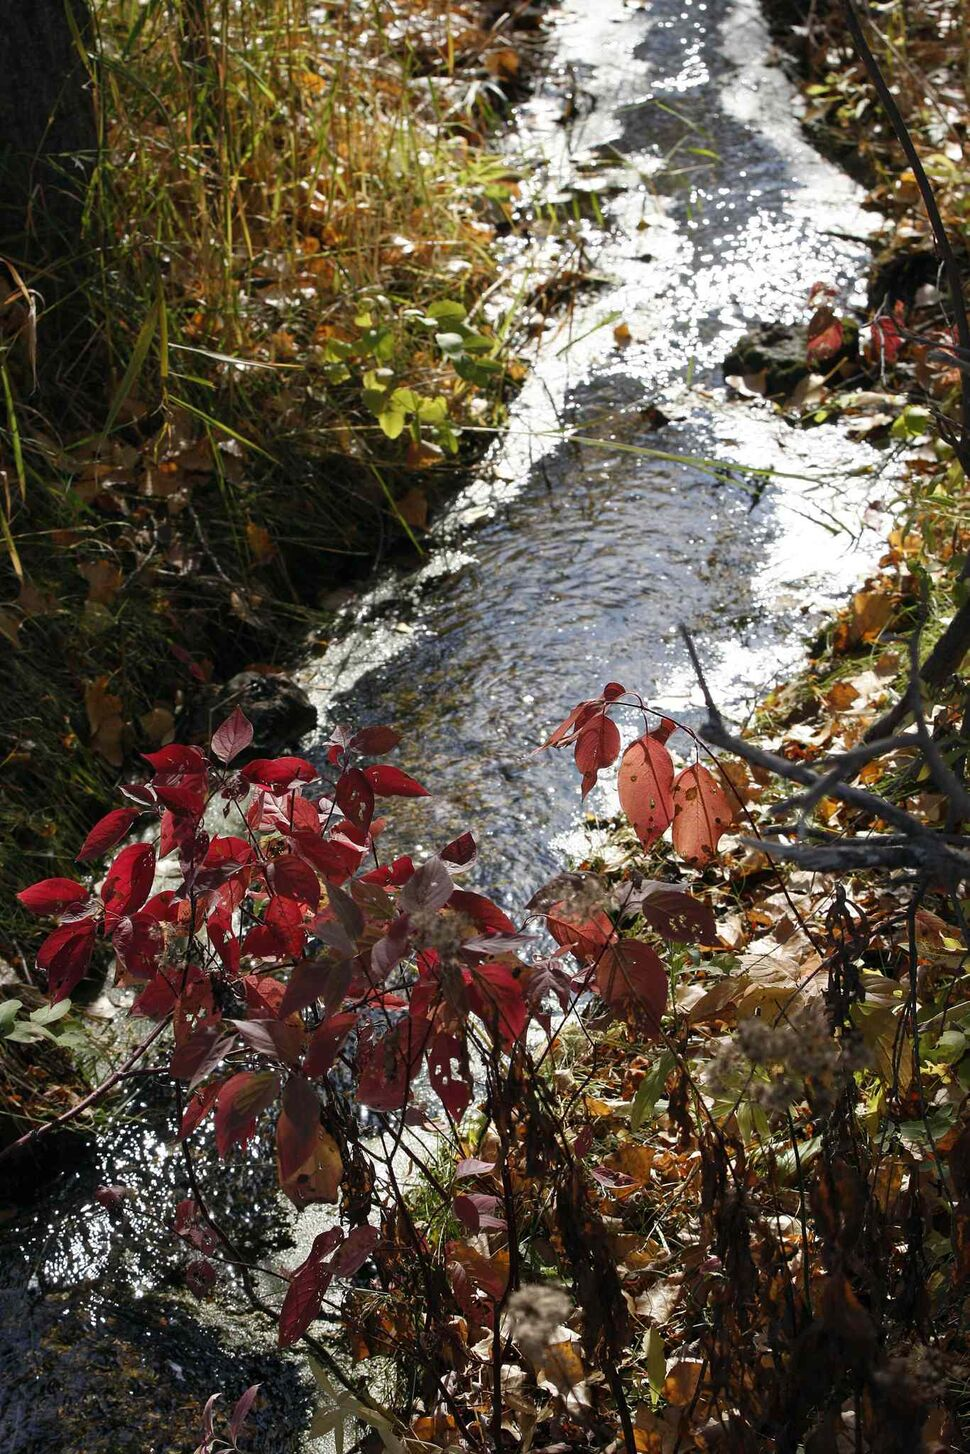 Sun reflects off a stream as the leaves change colour. (KEN GIGLIOTTI / WINNIPEG FREE PRESS)